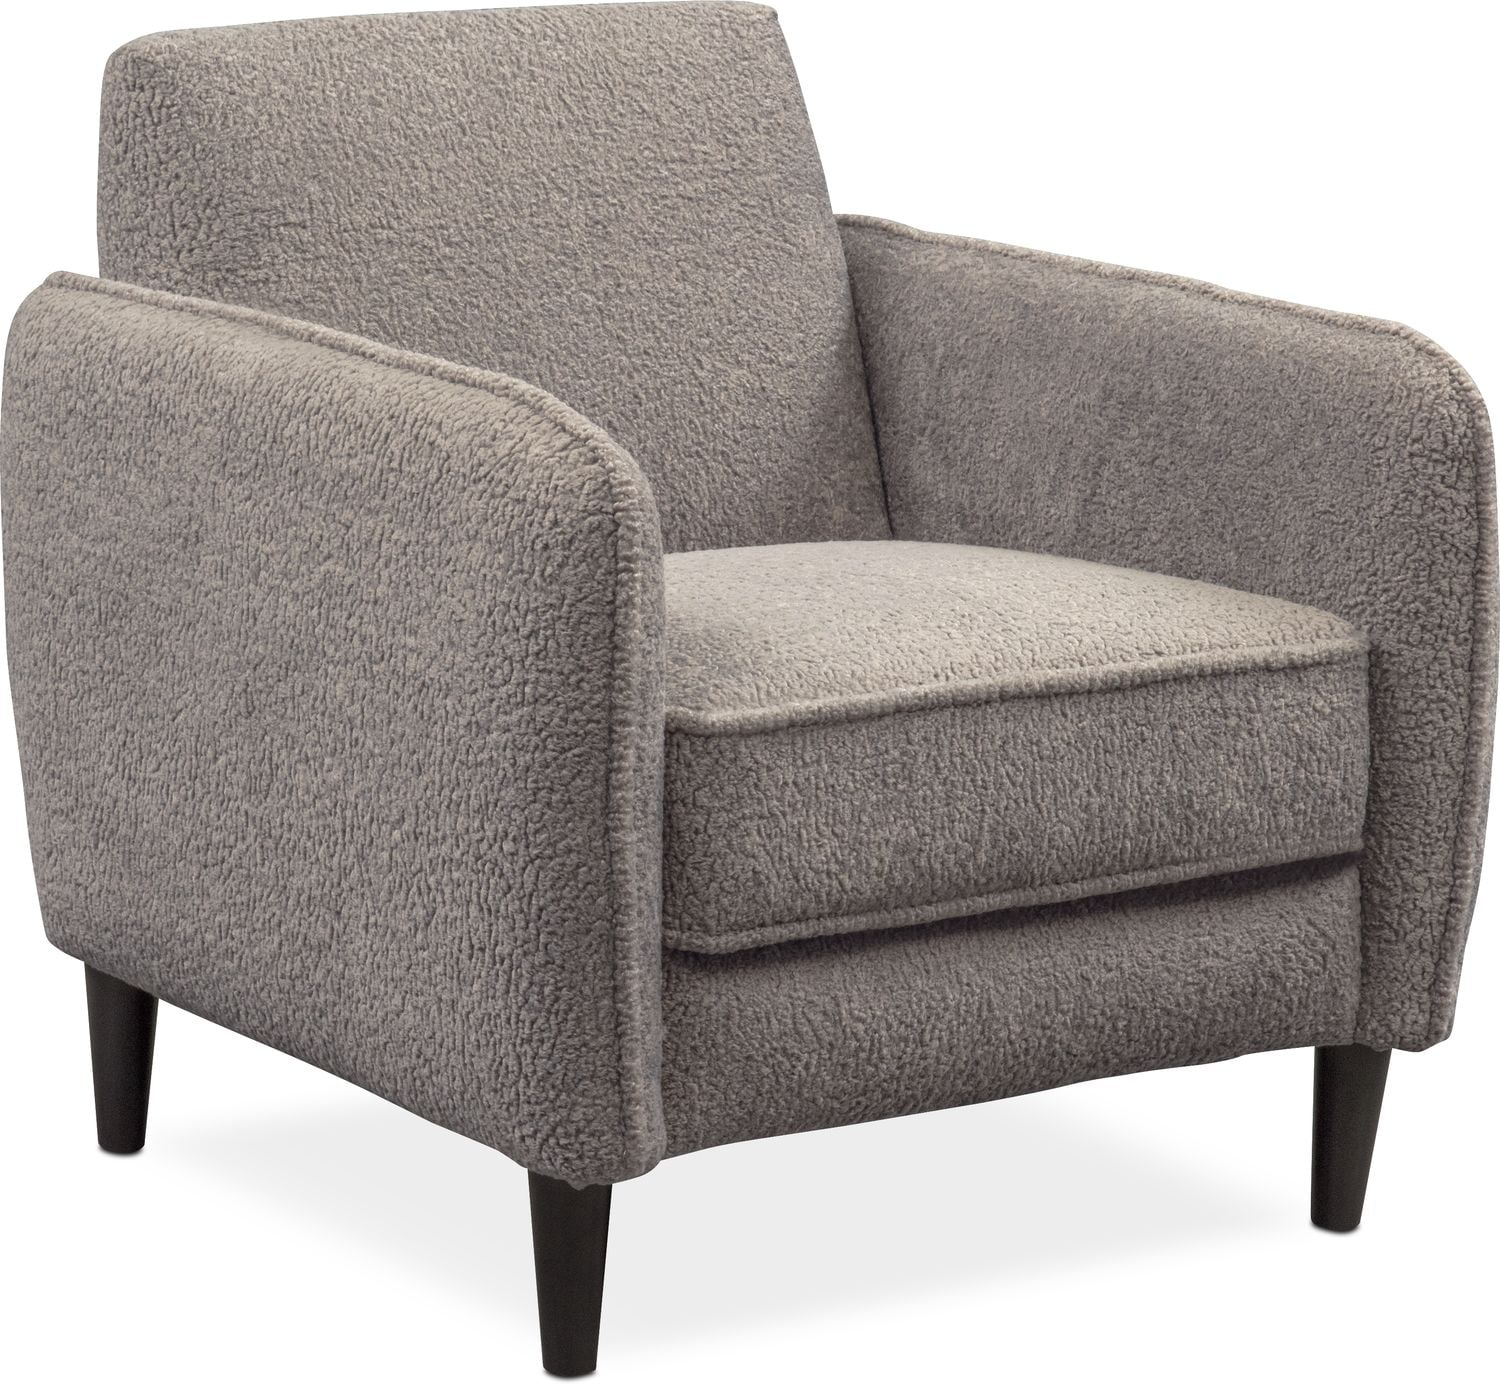 Terry Accent Chair Gray Value City Furniture And